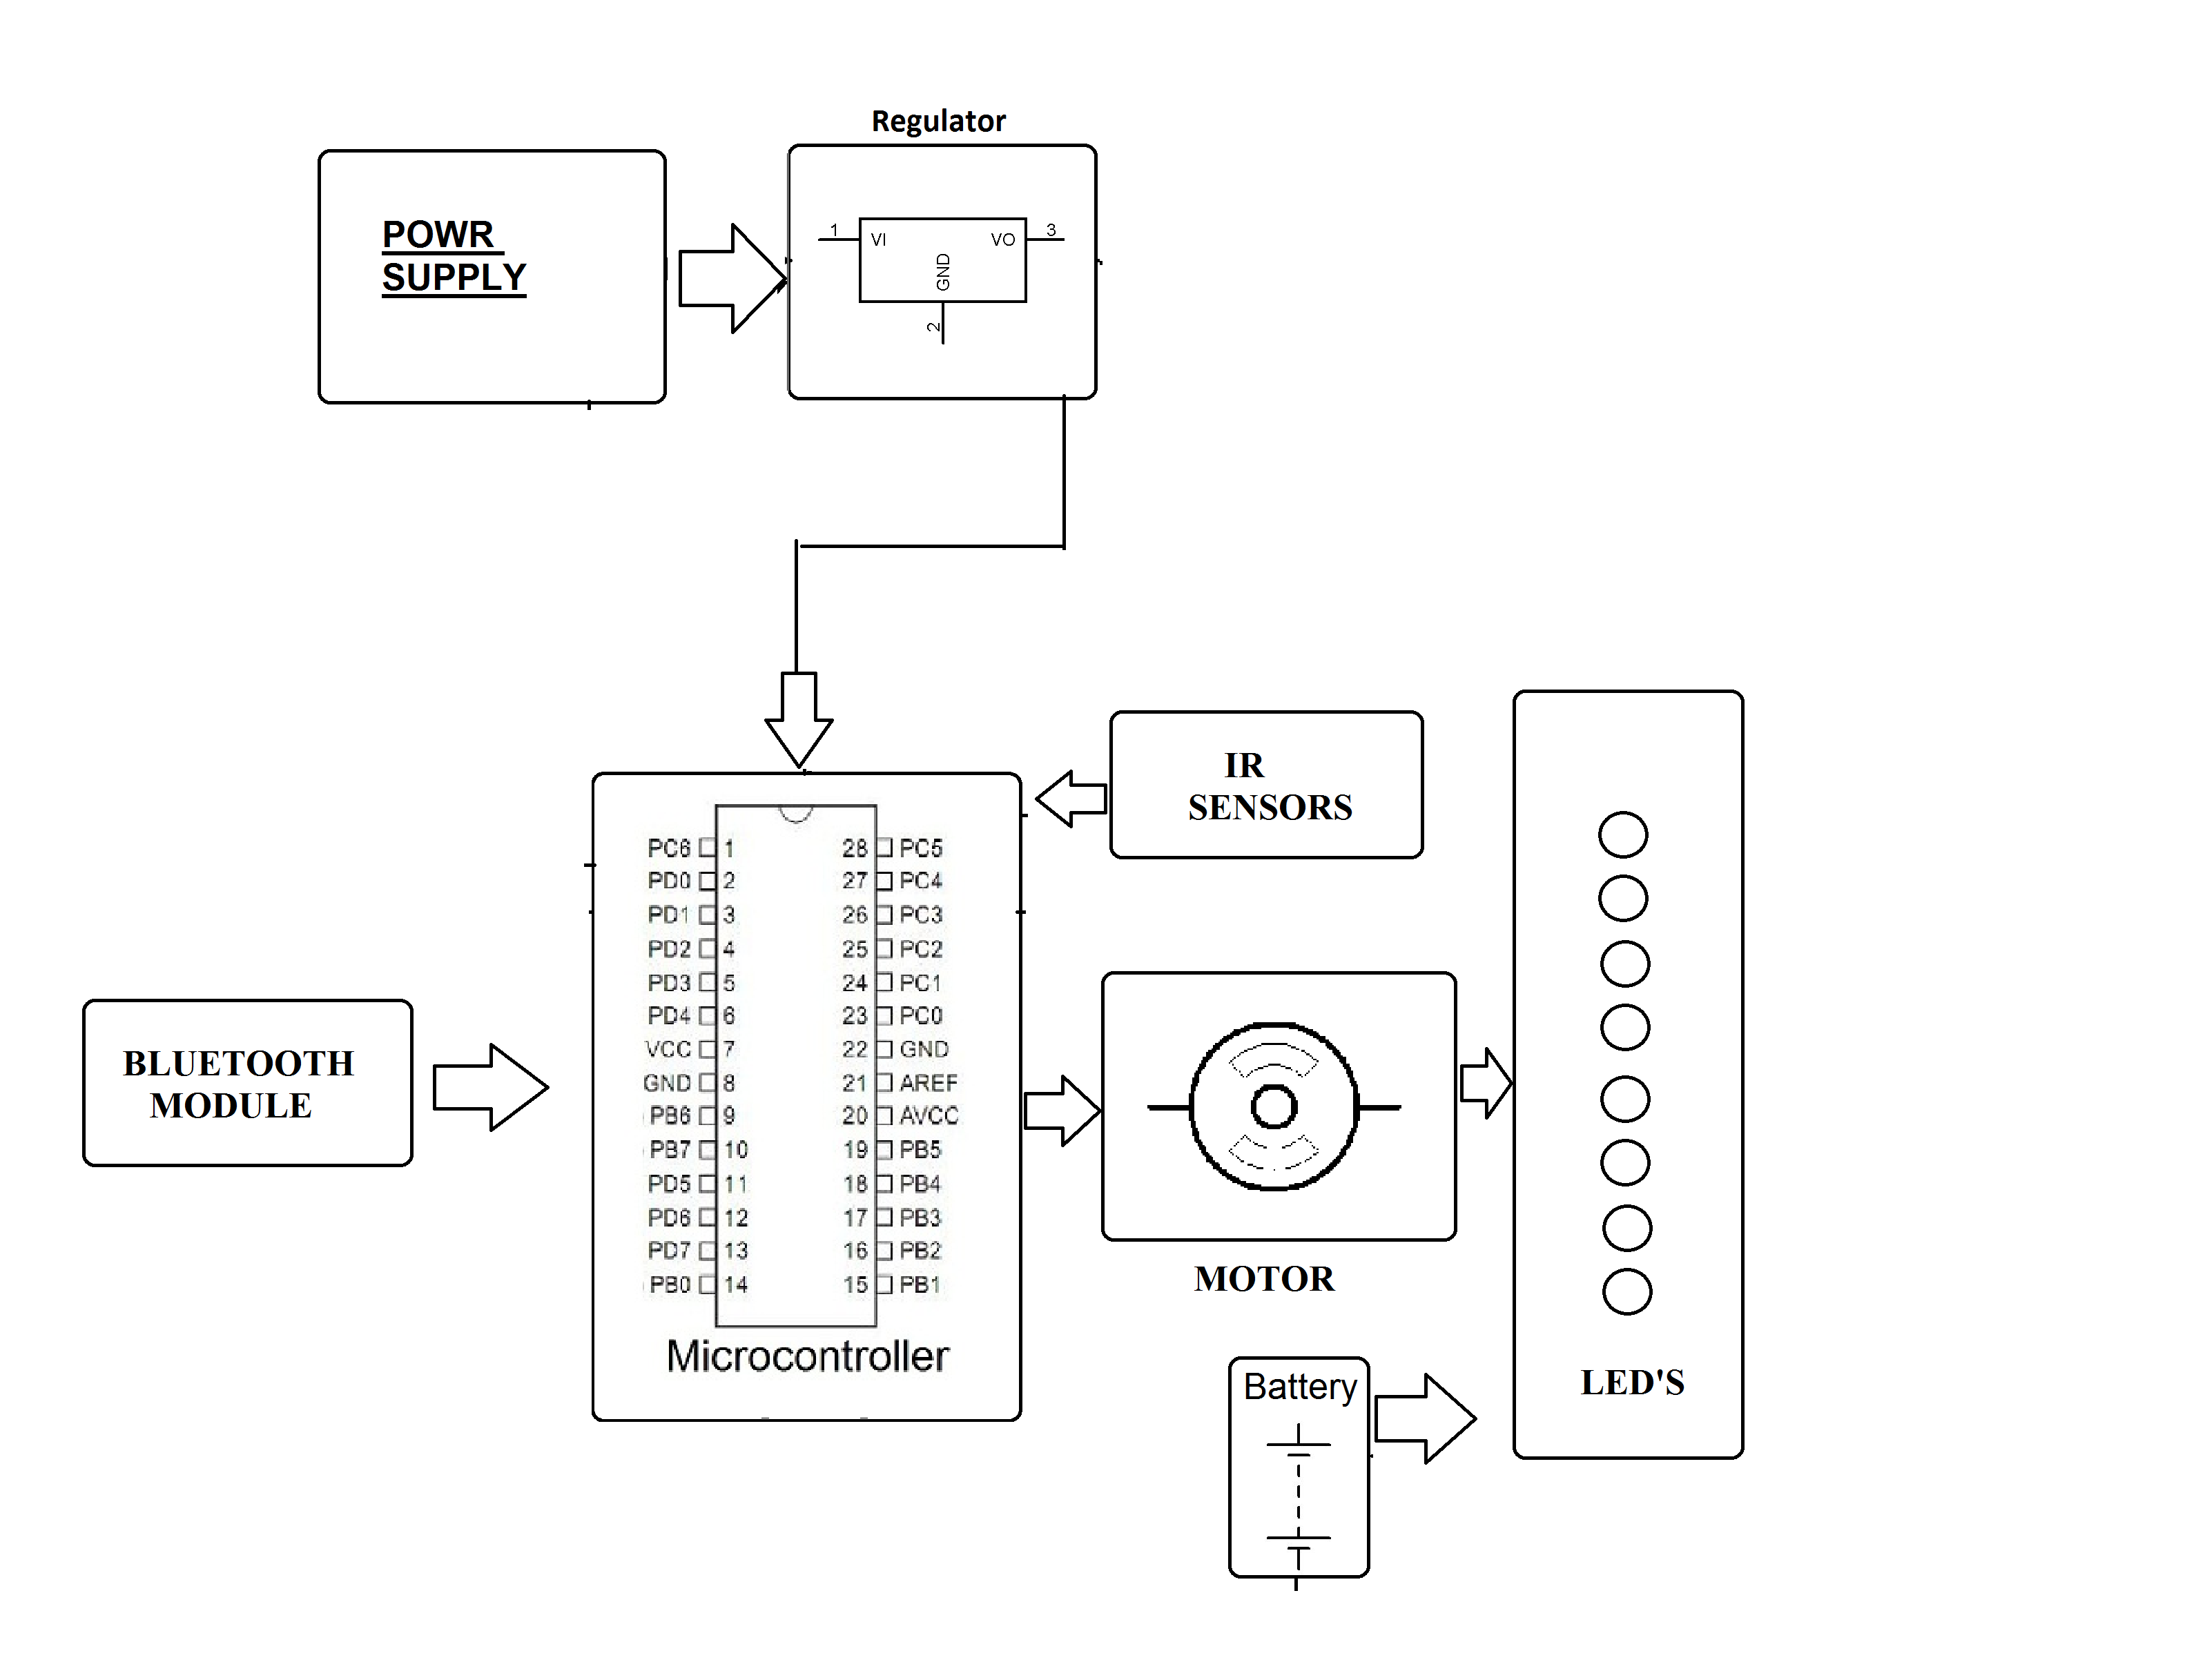 Displaying Time Using Led Propeller Clock The Circuit For Dc Motor And Bluetooth Systemthe Block Diagram